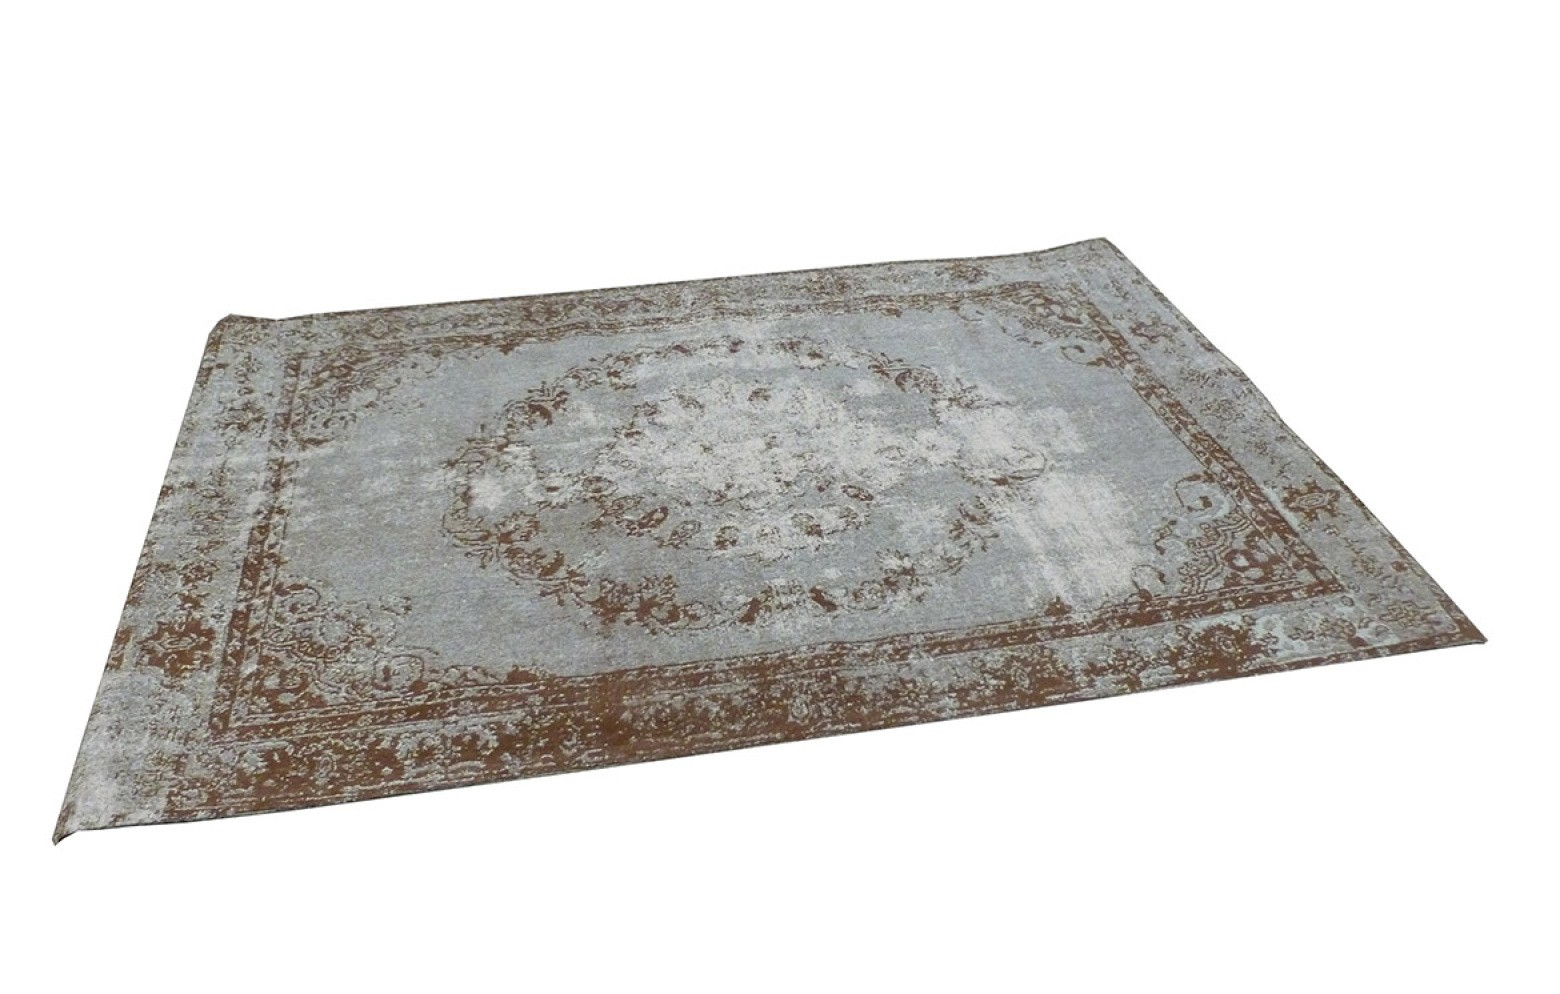 Teppich Outlet Rund Teppiche Outlet Trendy Pearl Carpet Teppich Outlet In